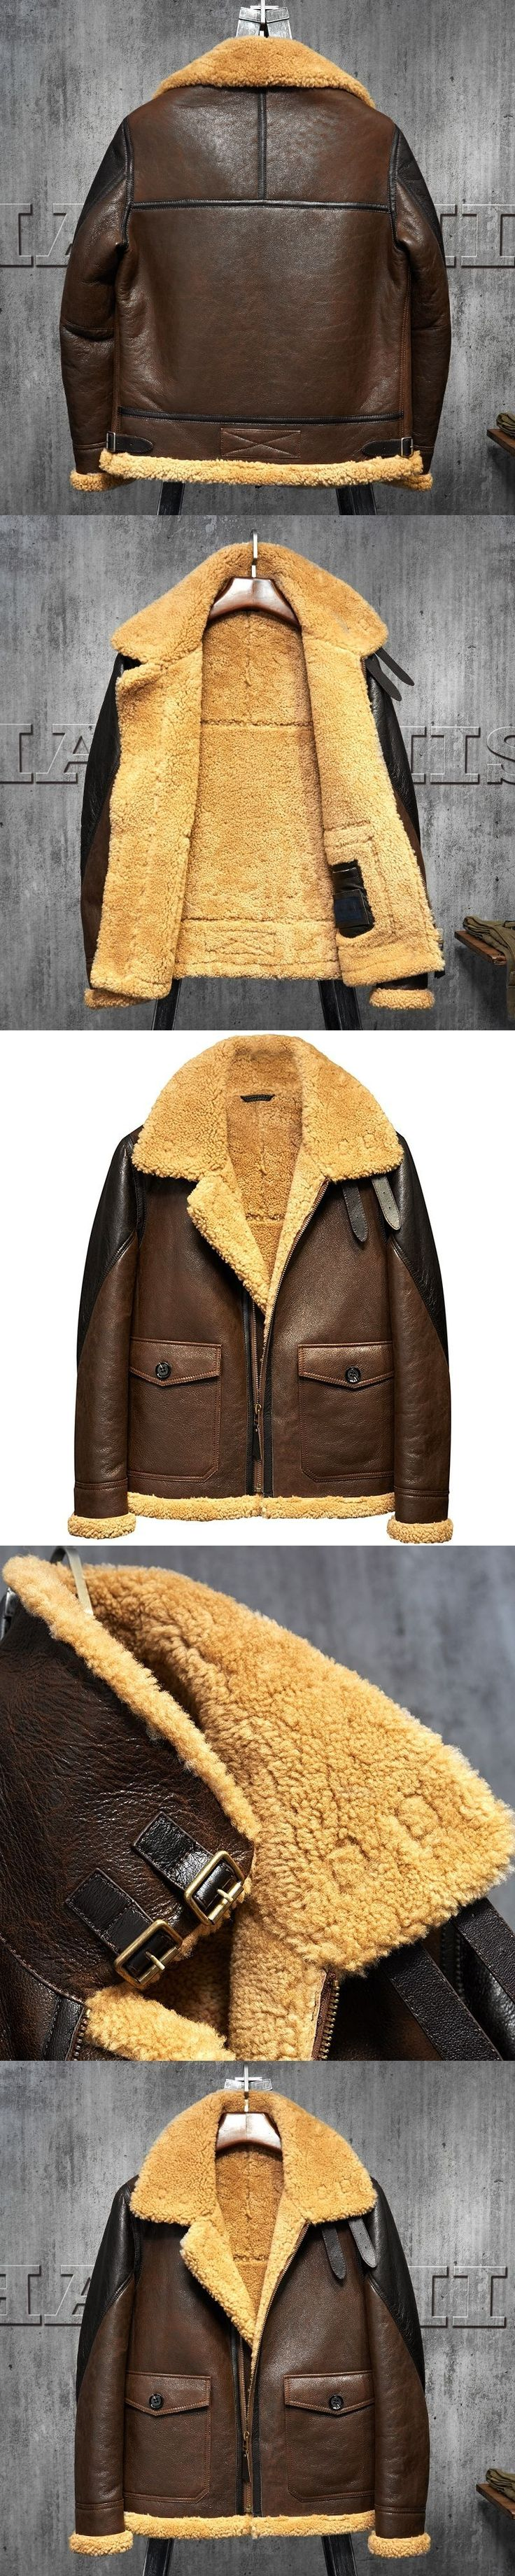 Light Brown B3 Men's Shearling Leather Jacket Original Flying Jacket Men's Fur Coat Pilots Coat